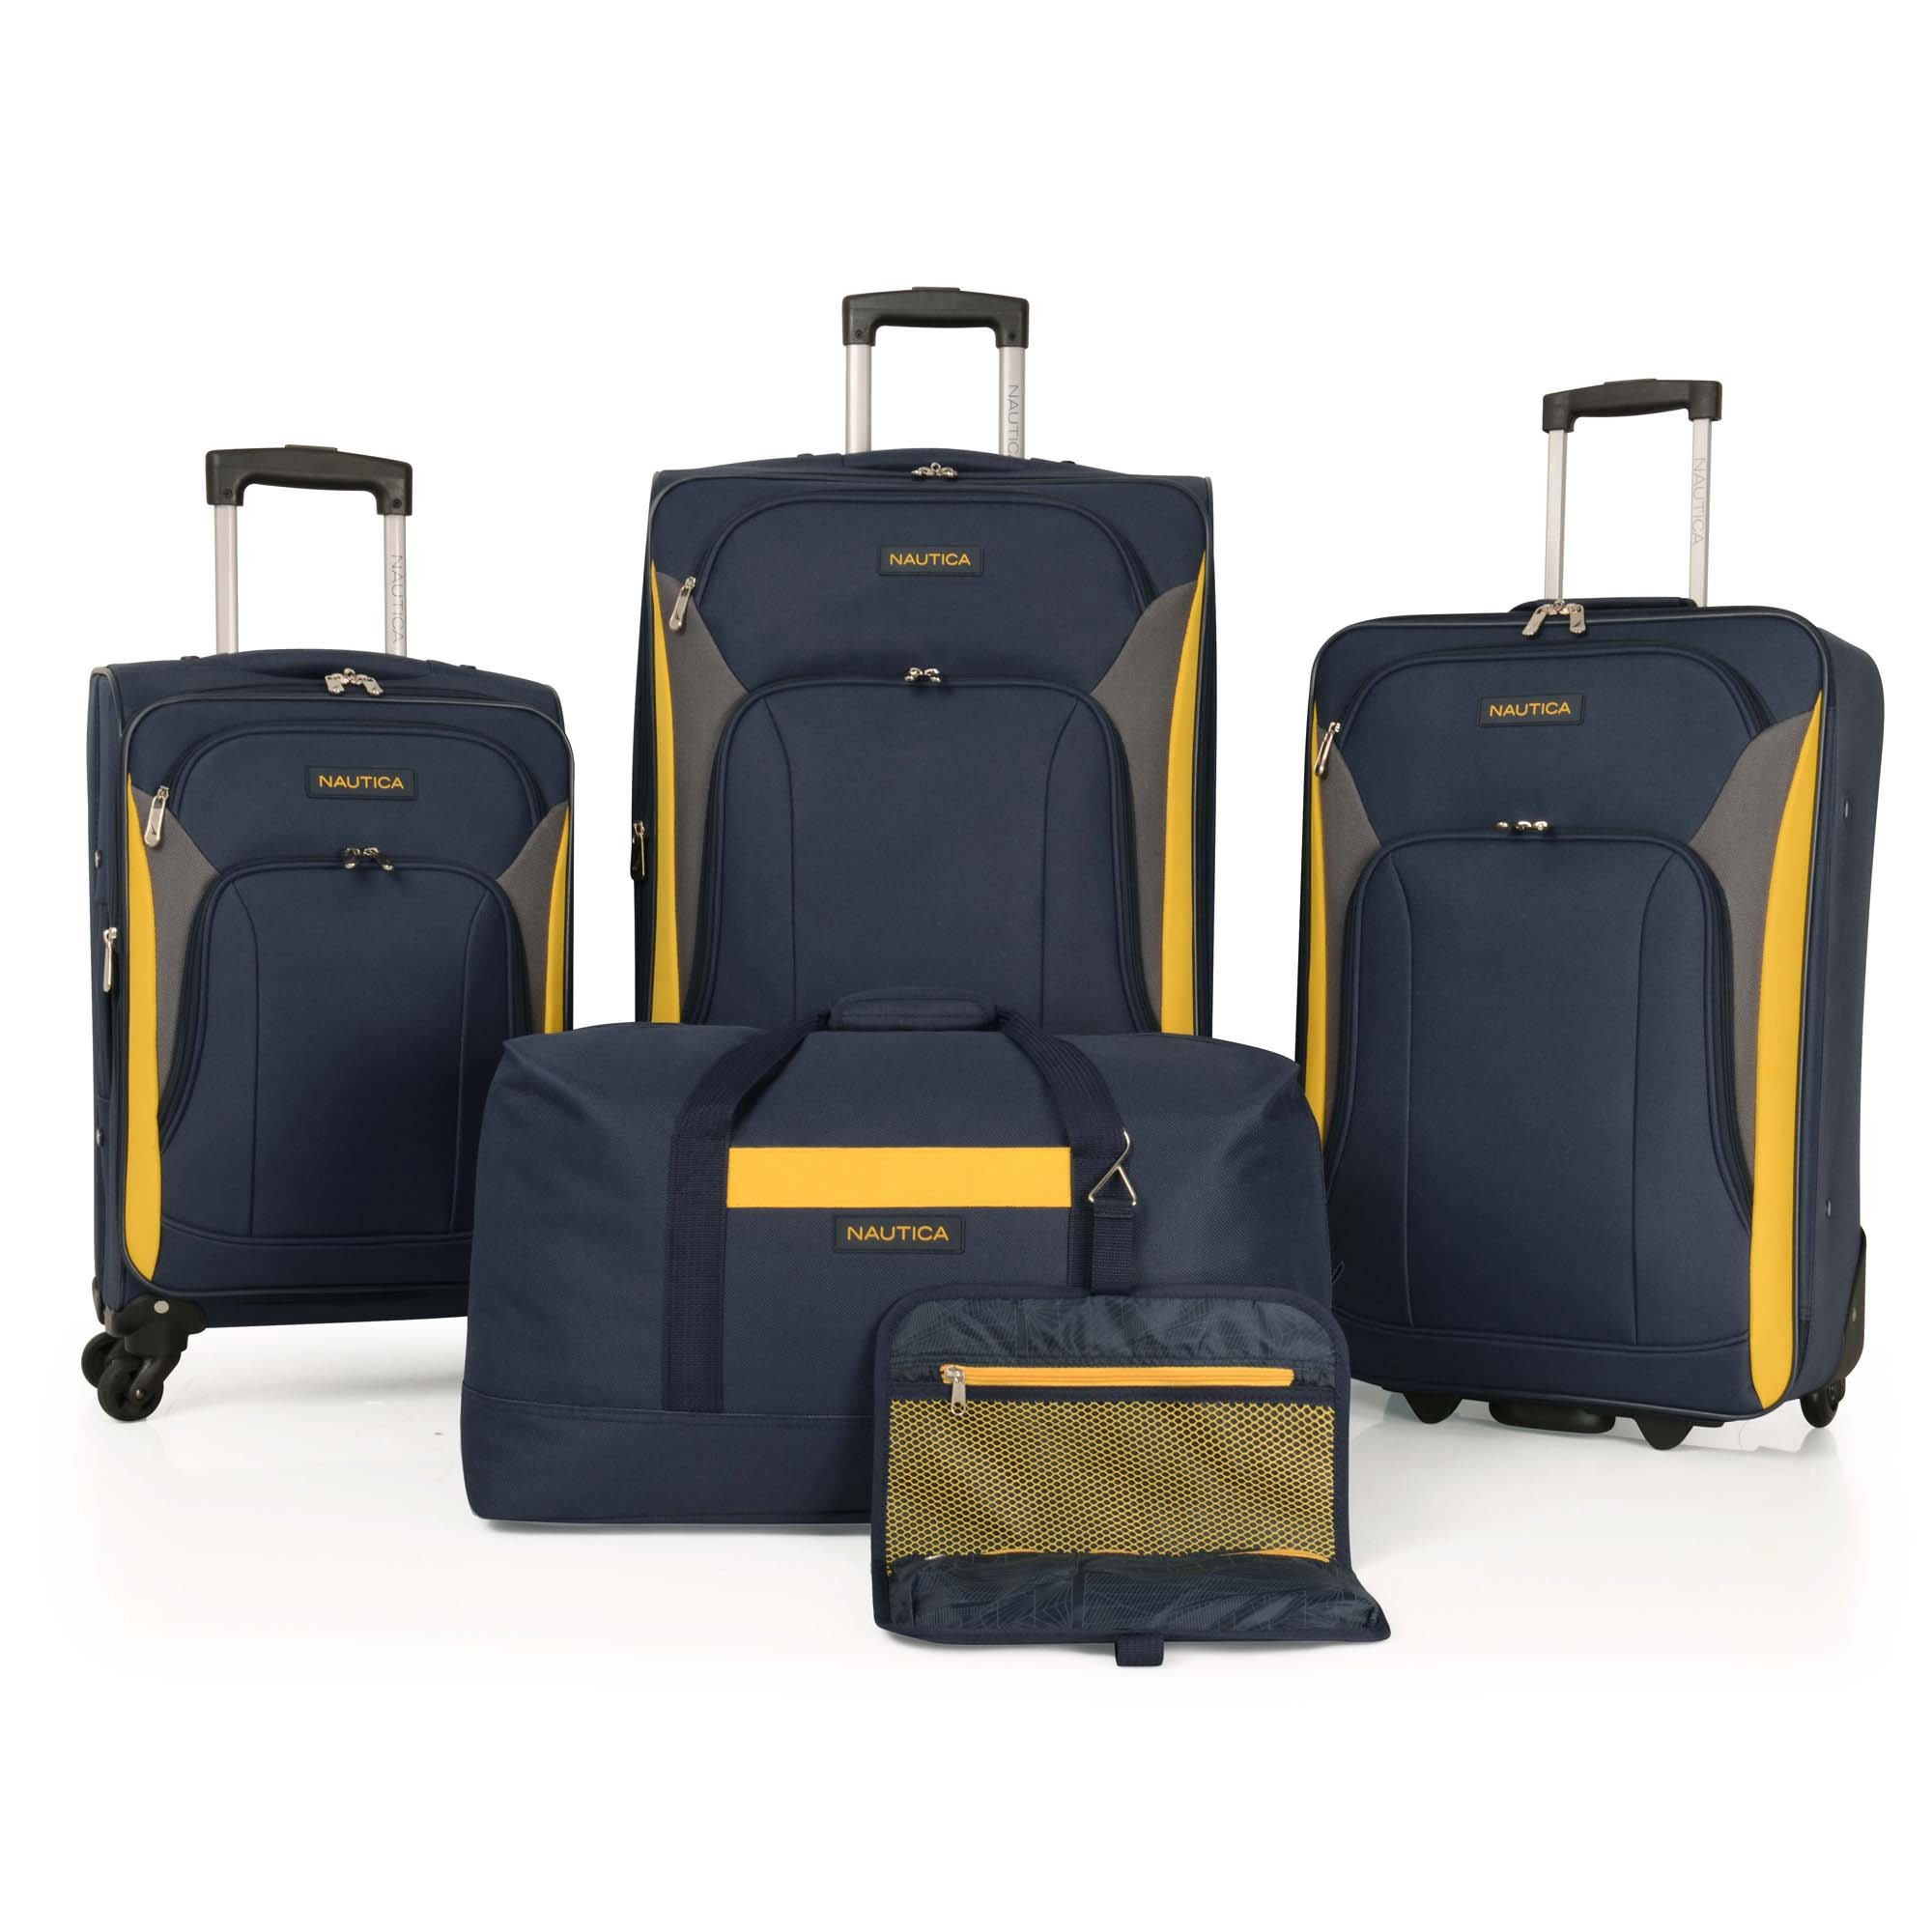 Nautica 5 Piece Luggage Set by Nautica